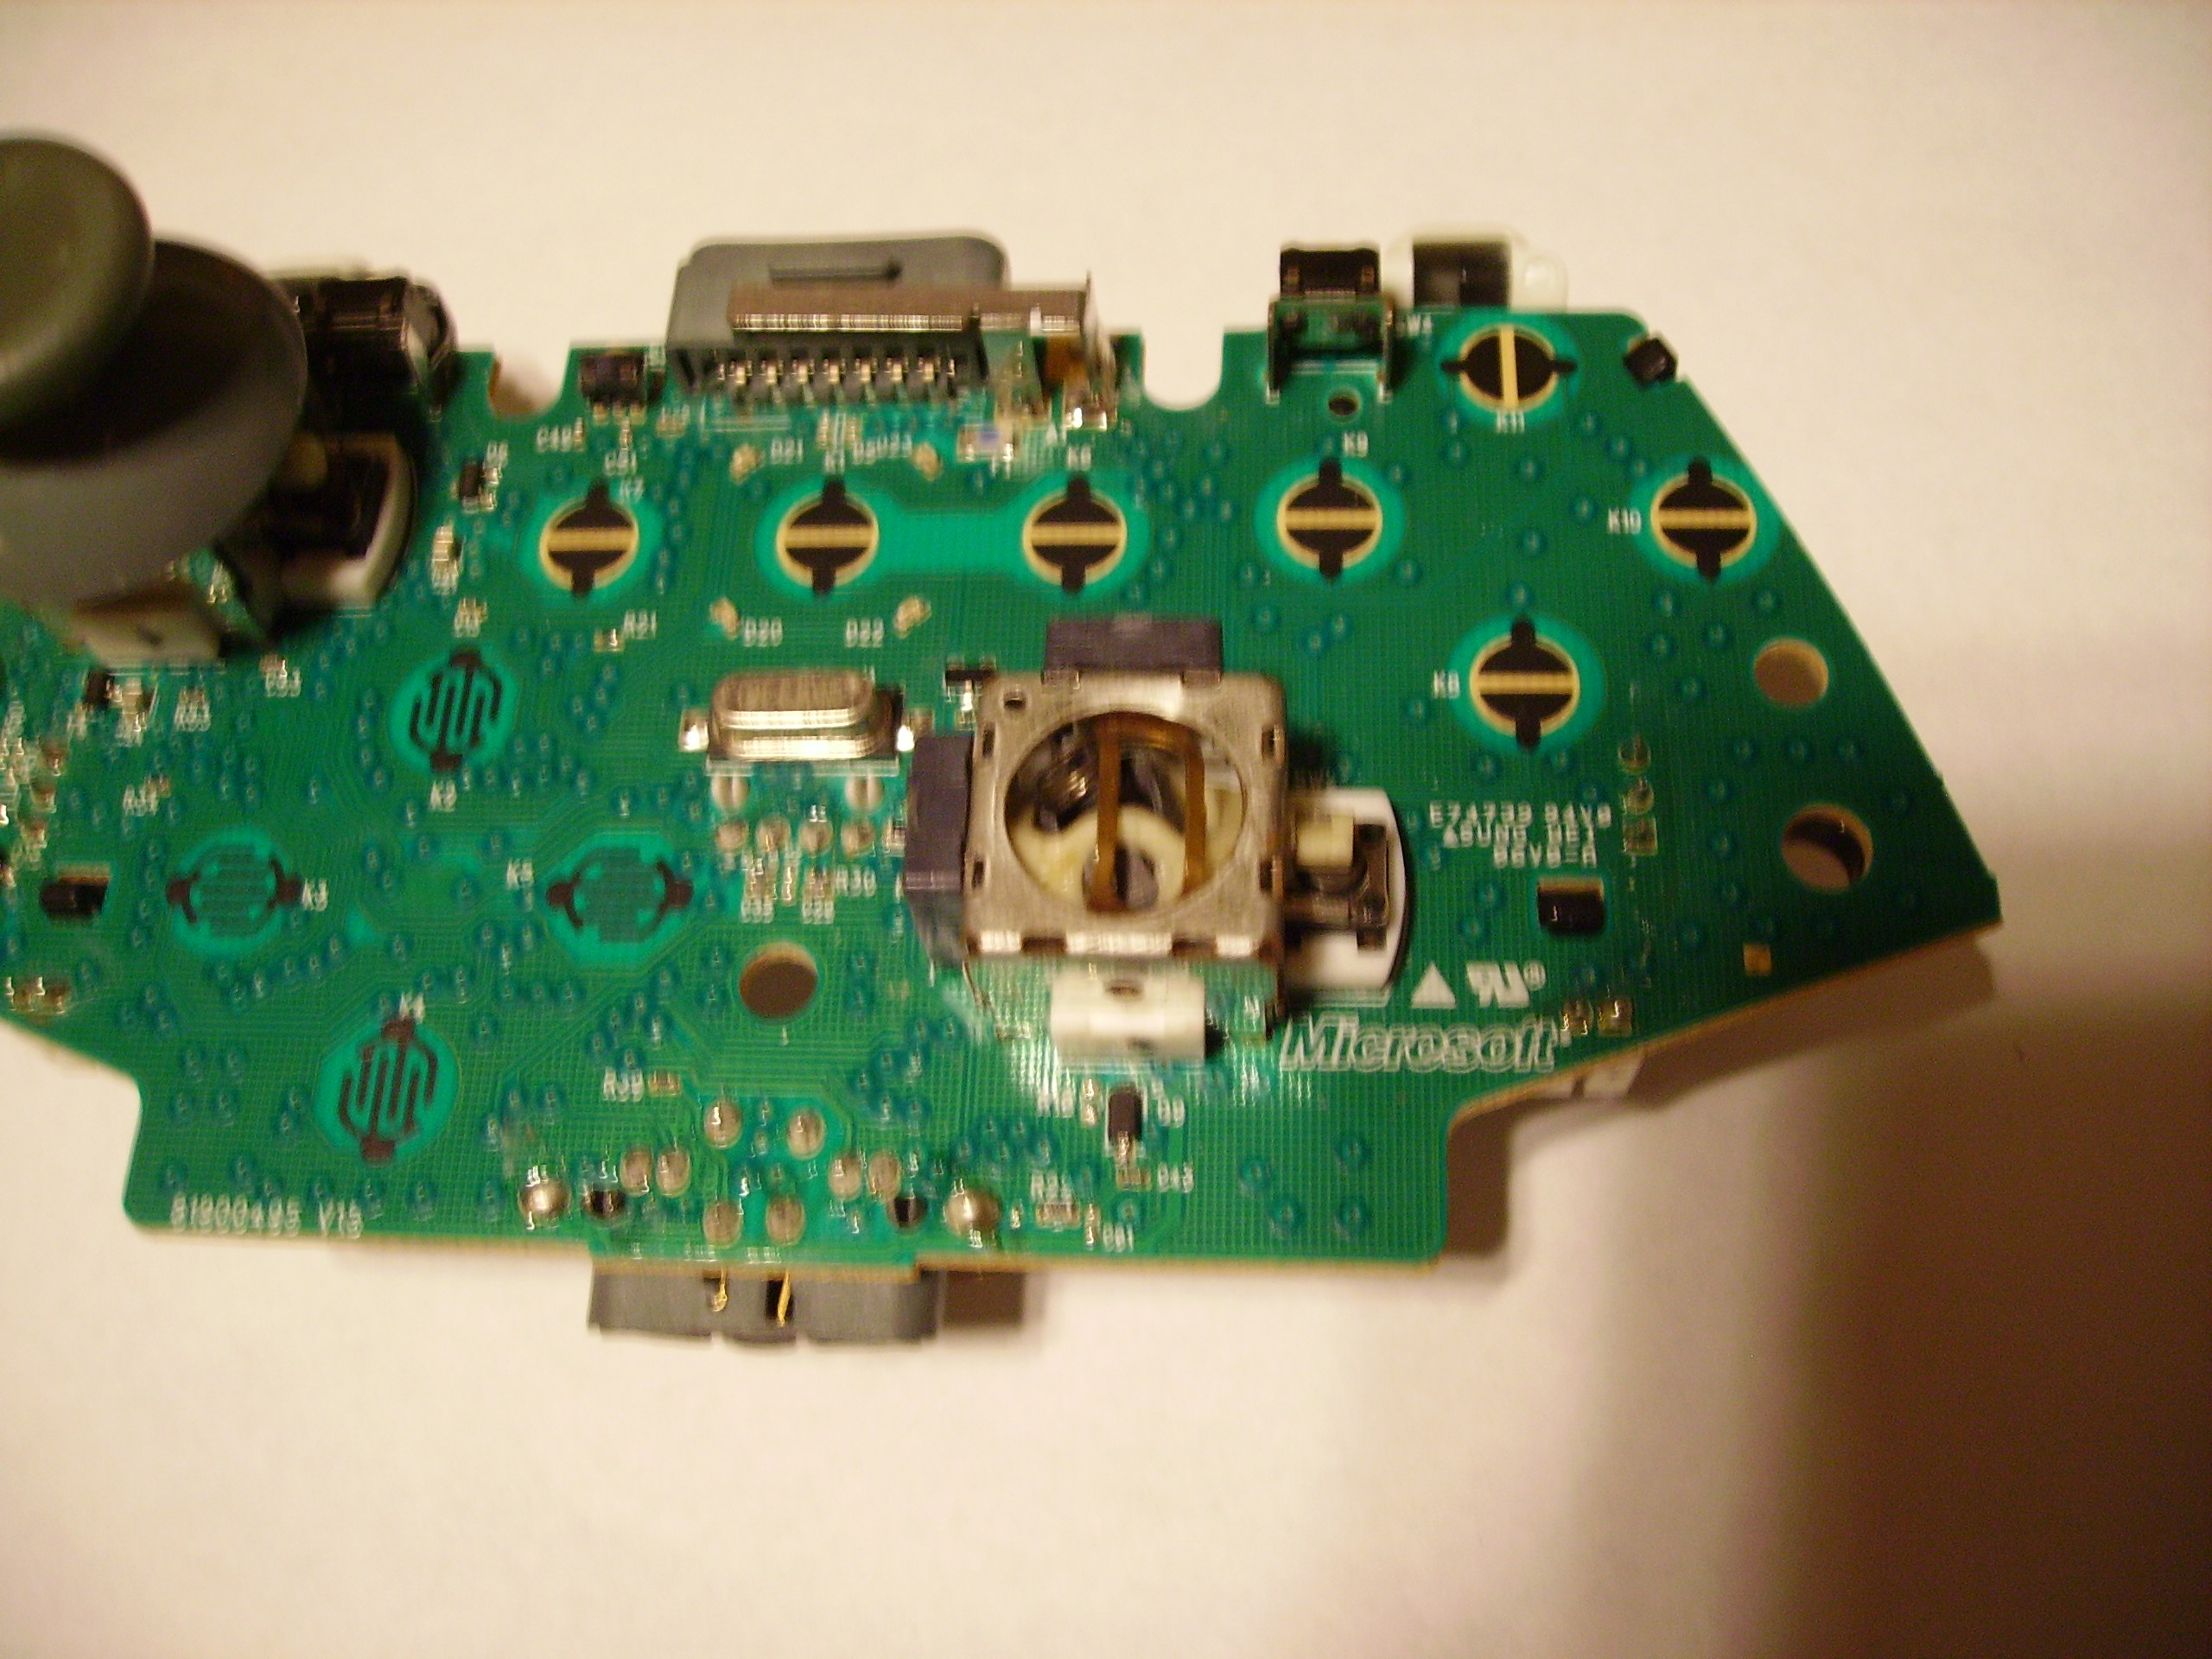 Picture of Desoldering the Broken Analog Stick/replacing the Thumbstick.